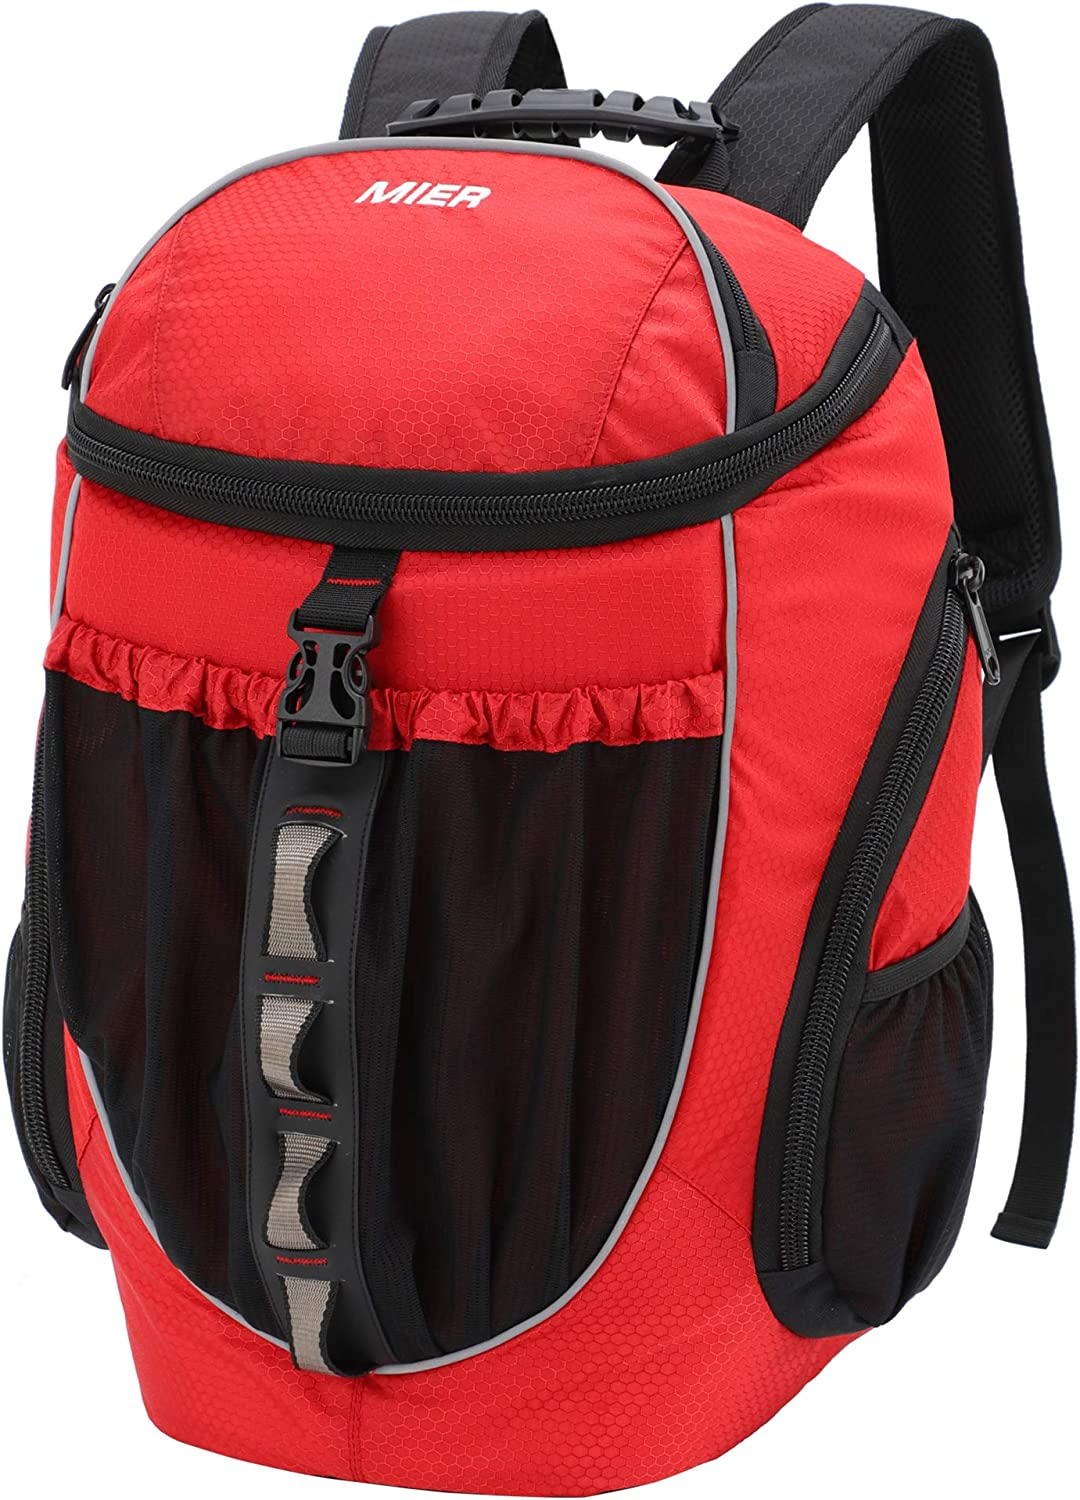 MIER Leakproof Backpack Cooler Men Women Insulated Backpack with Cooler Compartment for Lunch, Hiking, Beach, Picnic, Travel, Work, Multiple Pockets, 20 Can, Red